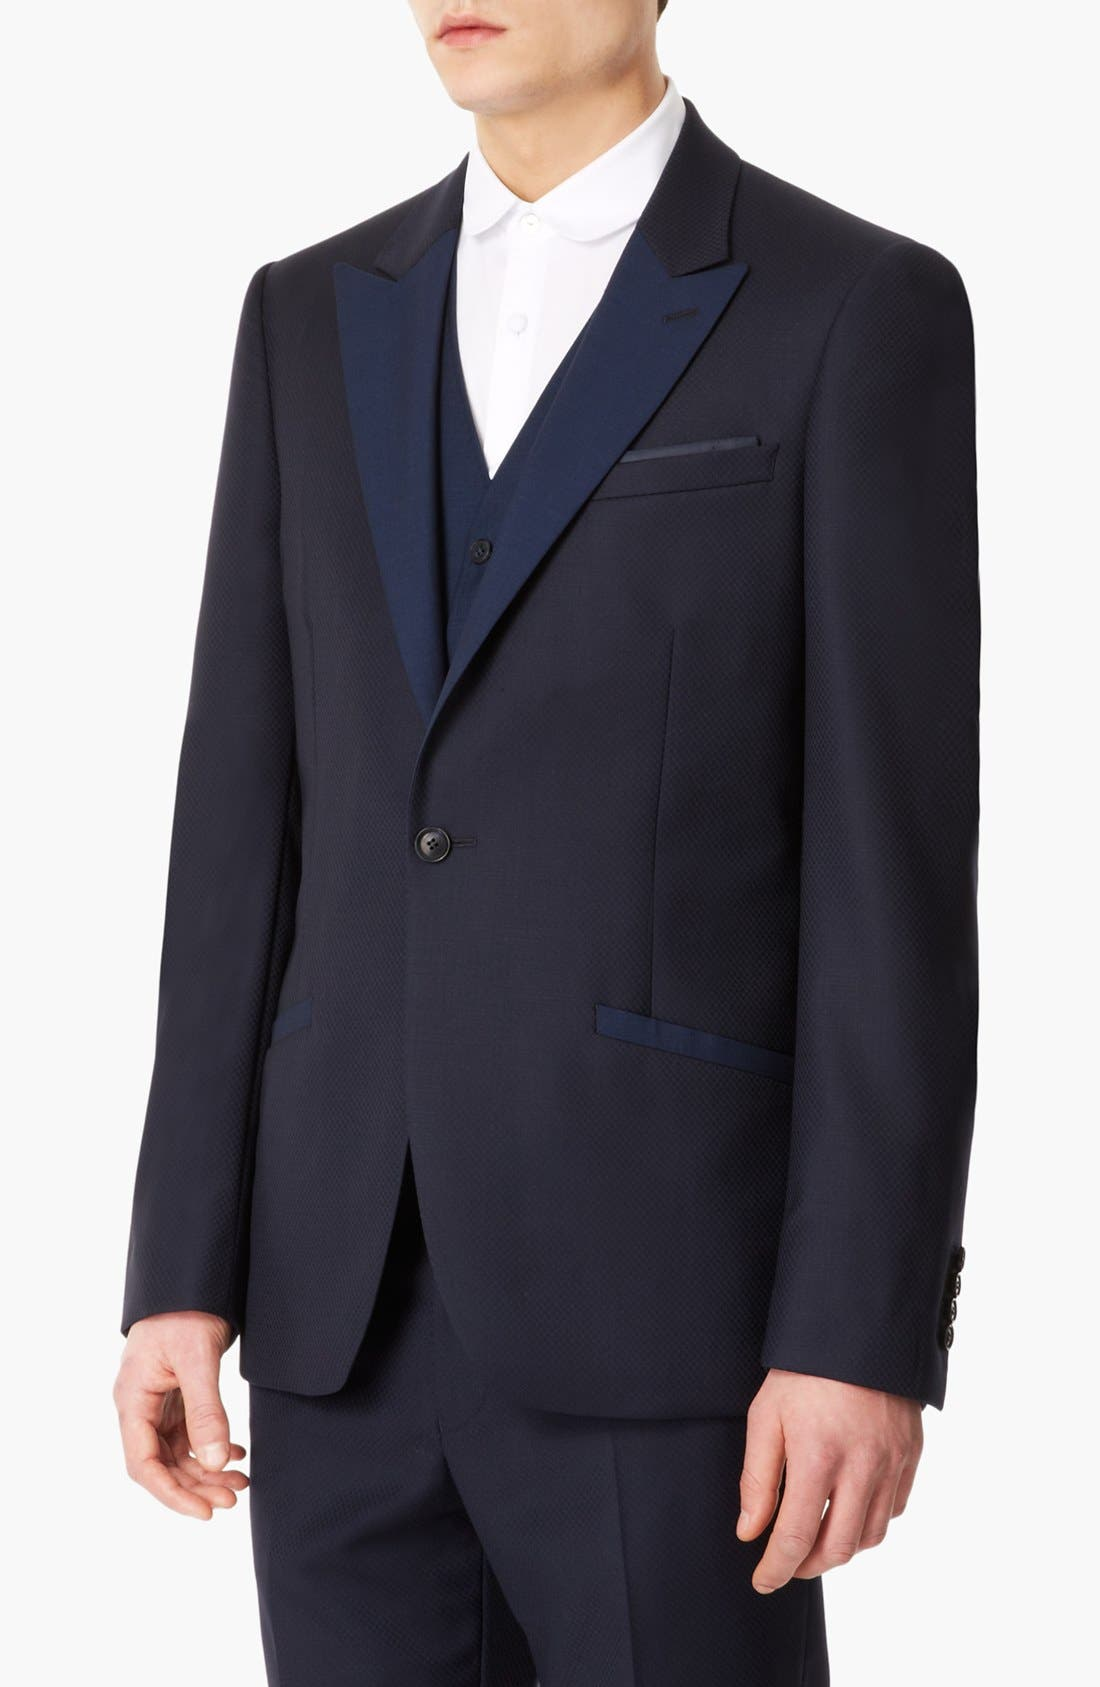 Alternate Image 1 Selected - Topman 'Lux Collection' Slim Fit Navy Wool One Button Blazer